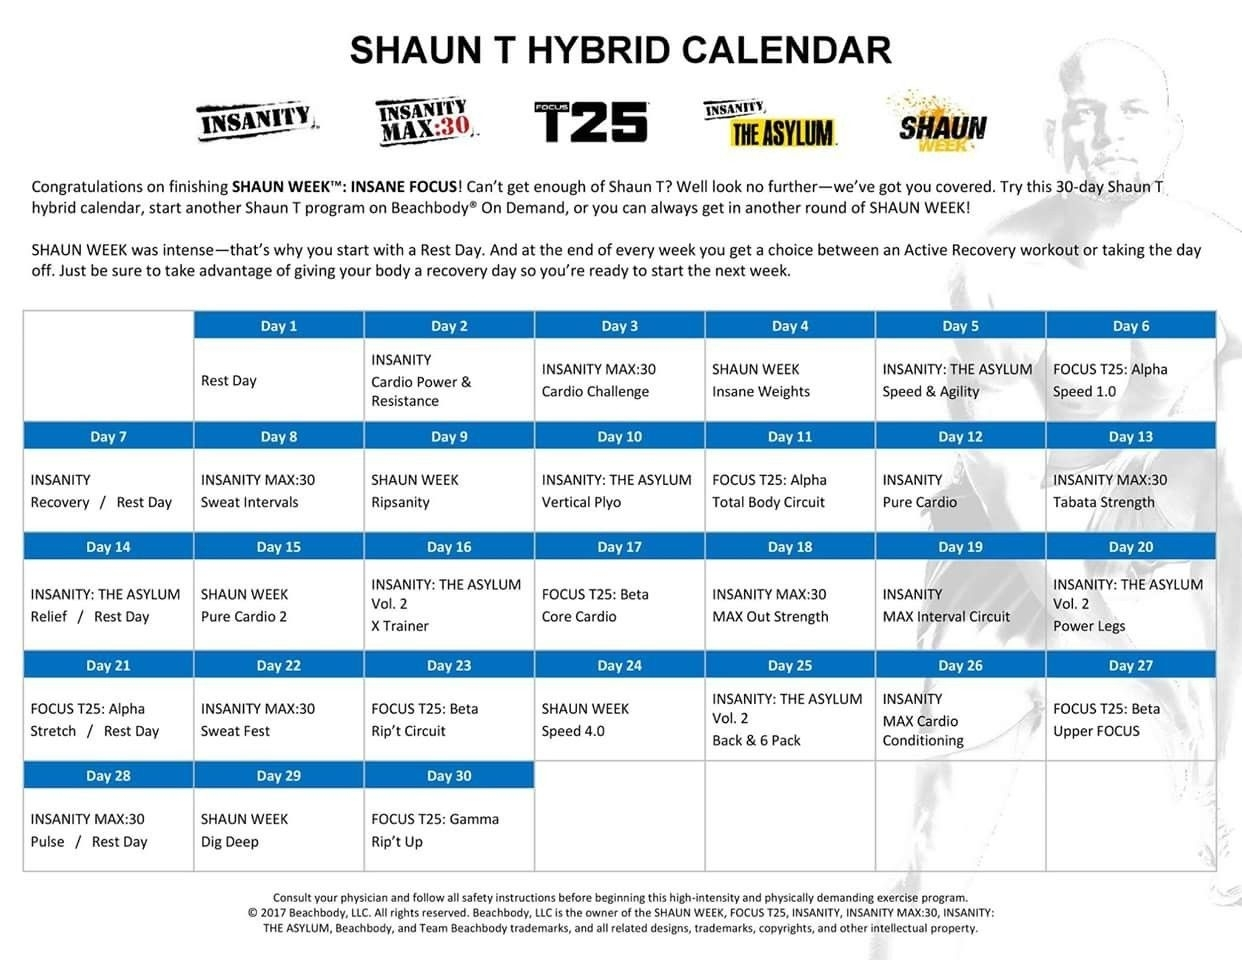 Shaun Week Monthly Calendar #2 Calendrier Hybride Mensuel | Exercise intended for Insanity Max 30 Calendar Month 2